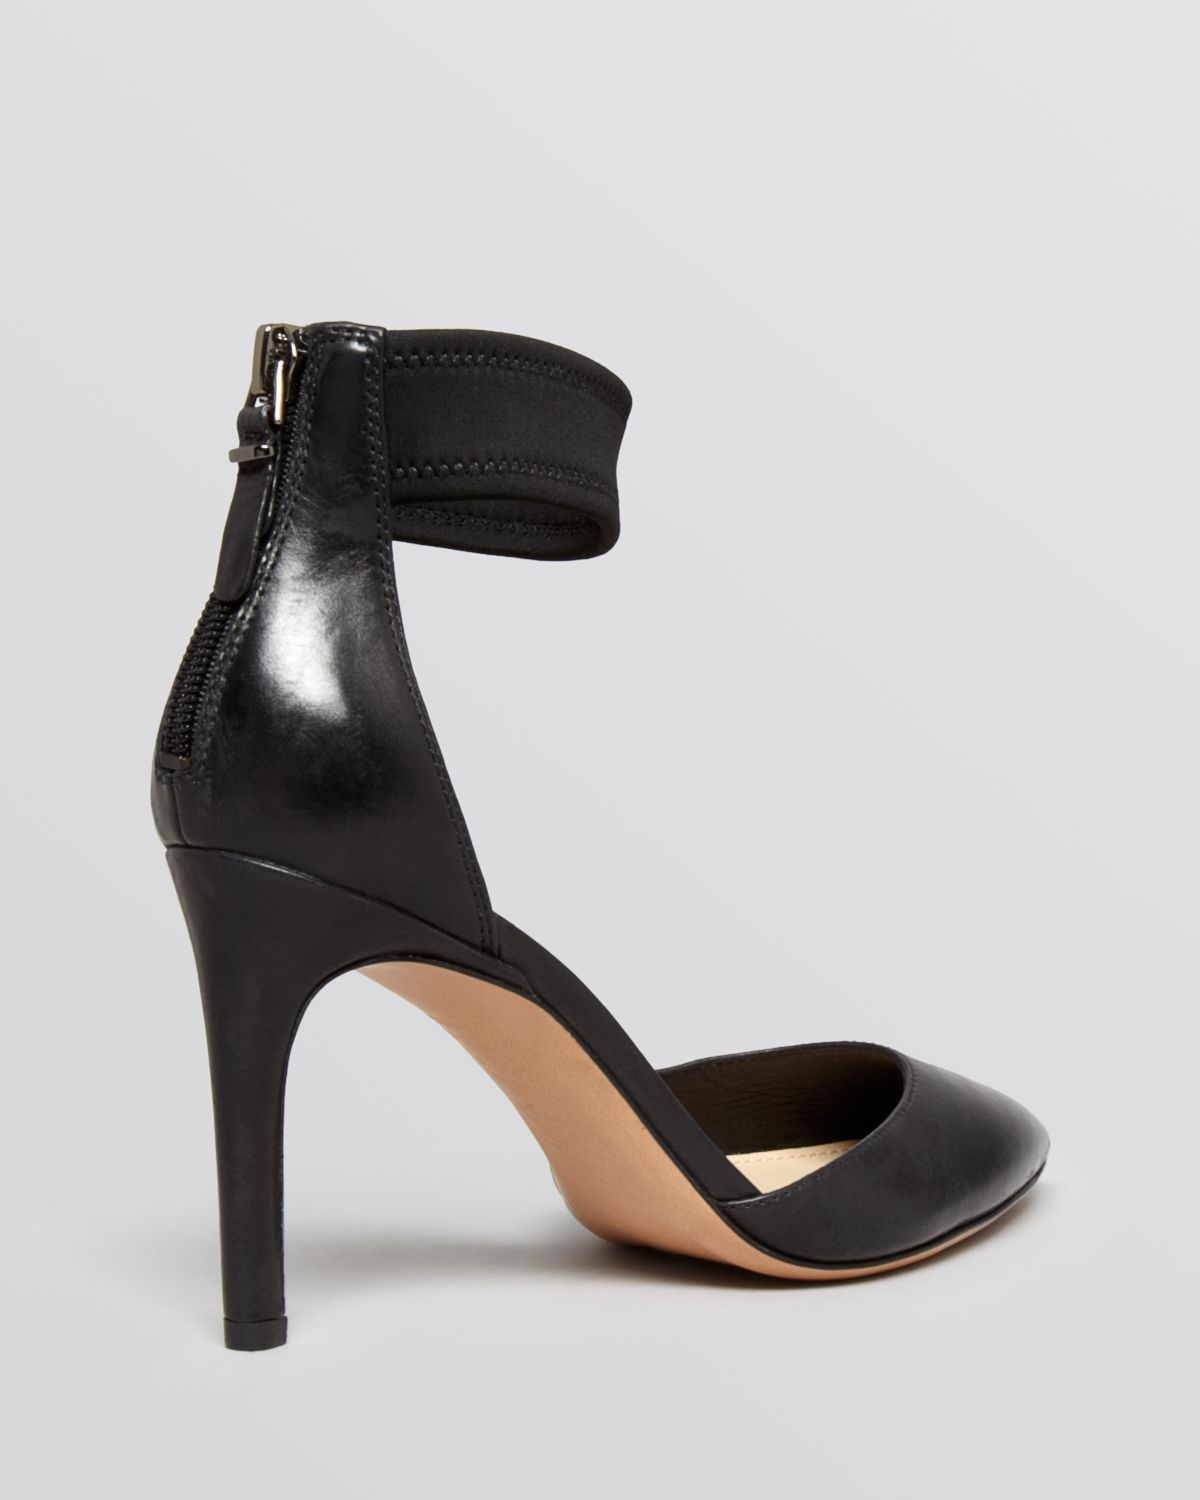 Black High Heel Shoes With Strap